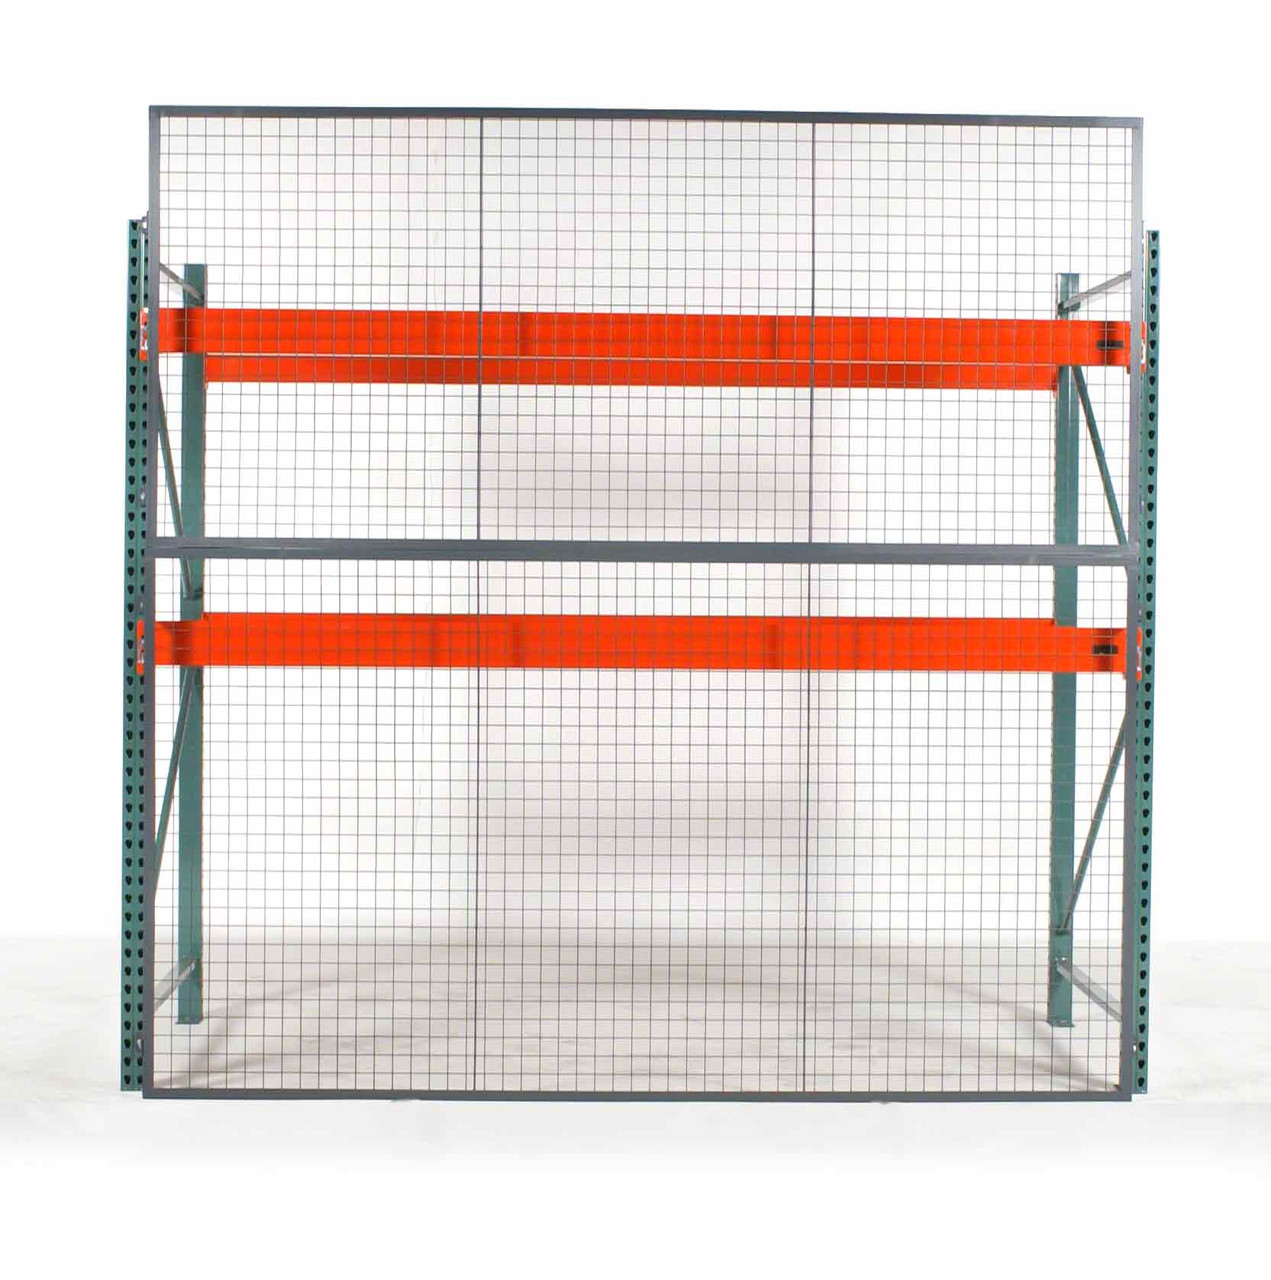 Protect your investment with RackBack Safety Panels by creating a strong barrier